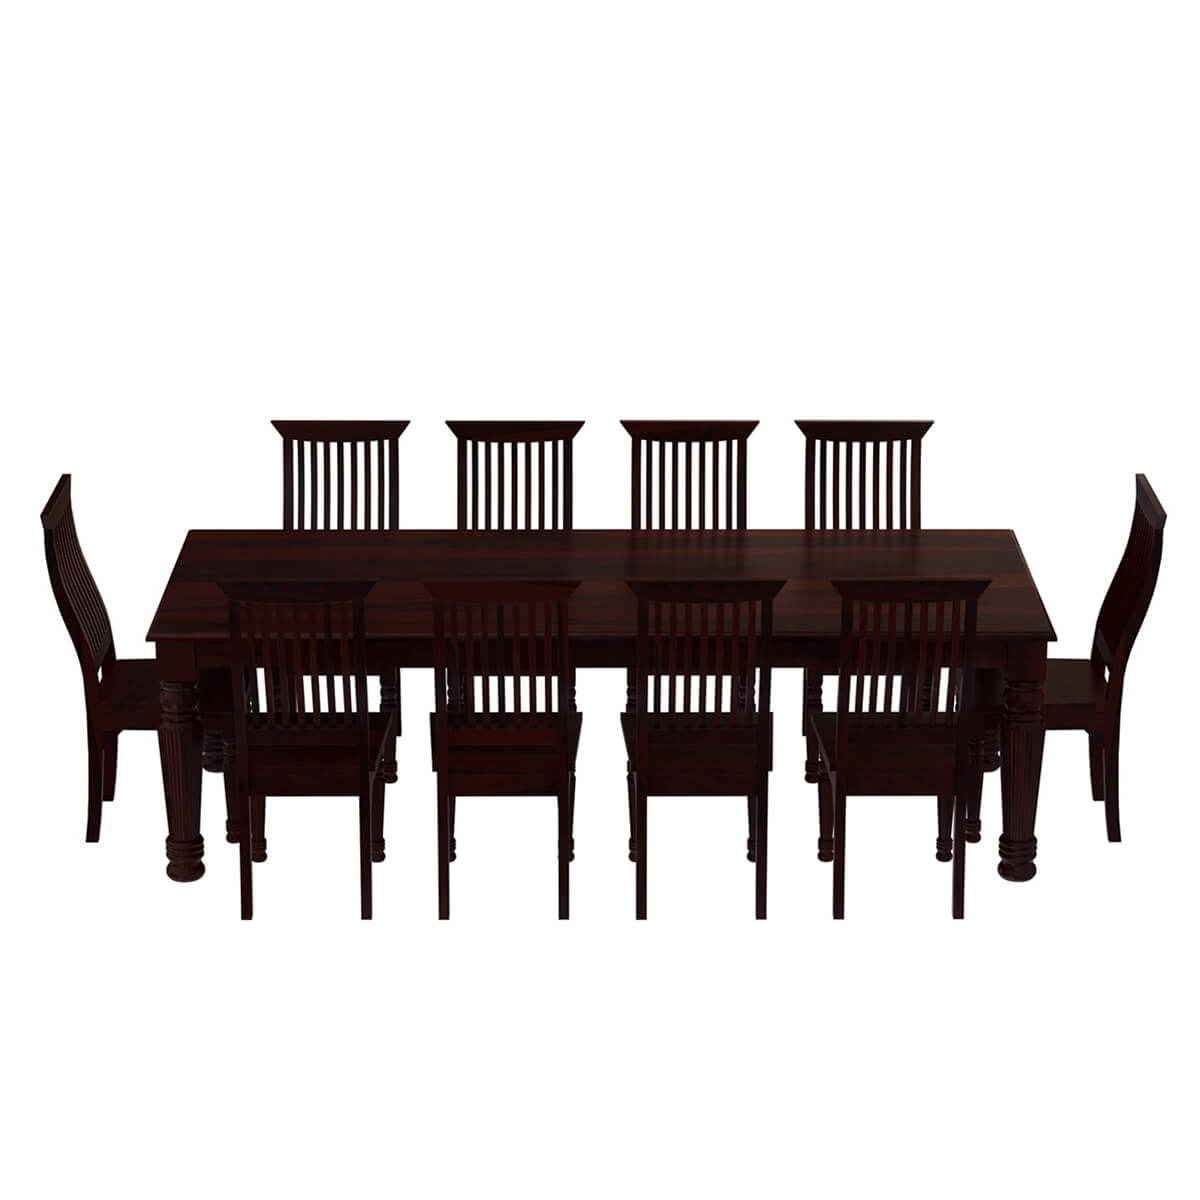 Colonial American Large Rustic Wood Dining Table And 10